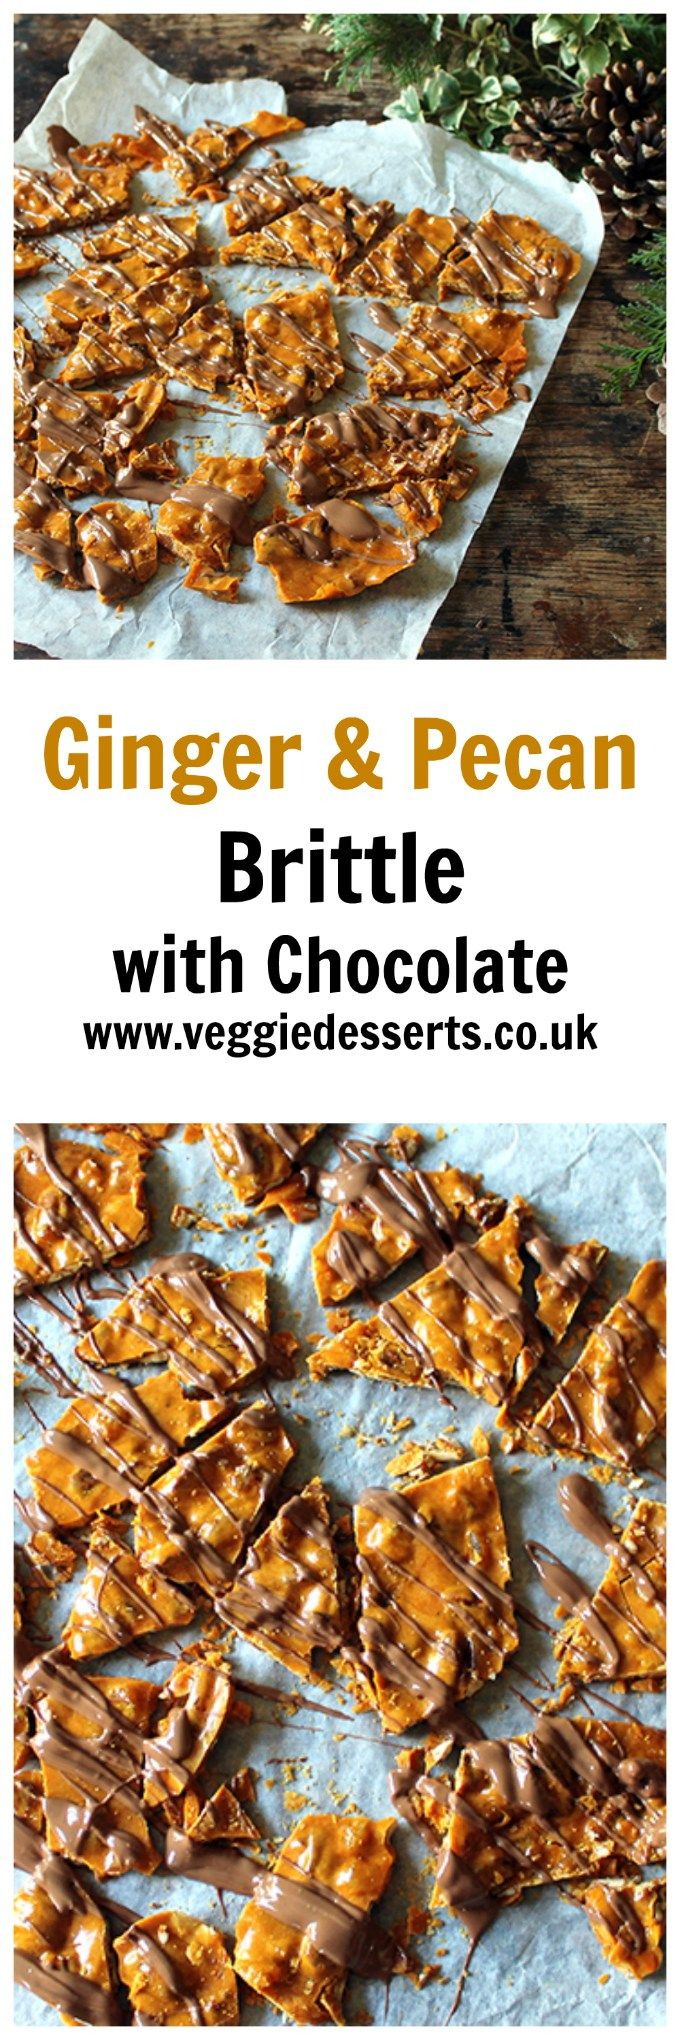 Ginger Pecan Brittle with Chocolate Drizzle | Veggie Desserts Blog by Kate Hackworthy  This Ginger and Pecan Brittle is really easy to make and is perfect to pop into a pretty bag or jar and tie up with ribbon to give as a homemade Christmas gift. The rich, buttery toffee is infused with crystallised ginger and crunchy, perfumed pecans. It's crisp and delicate, and perfect with a liberal drizzle of milk chocolate.